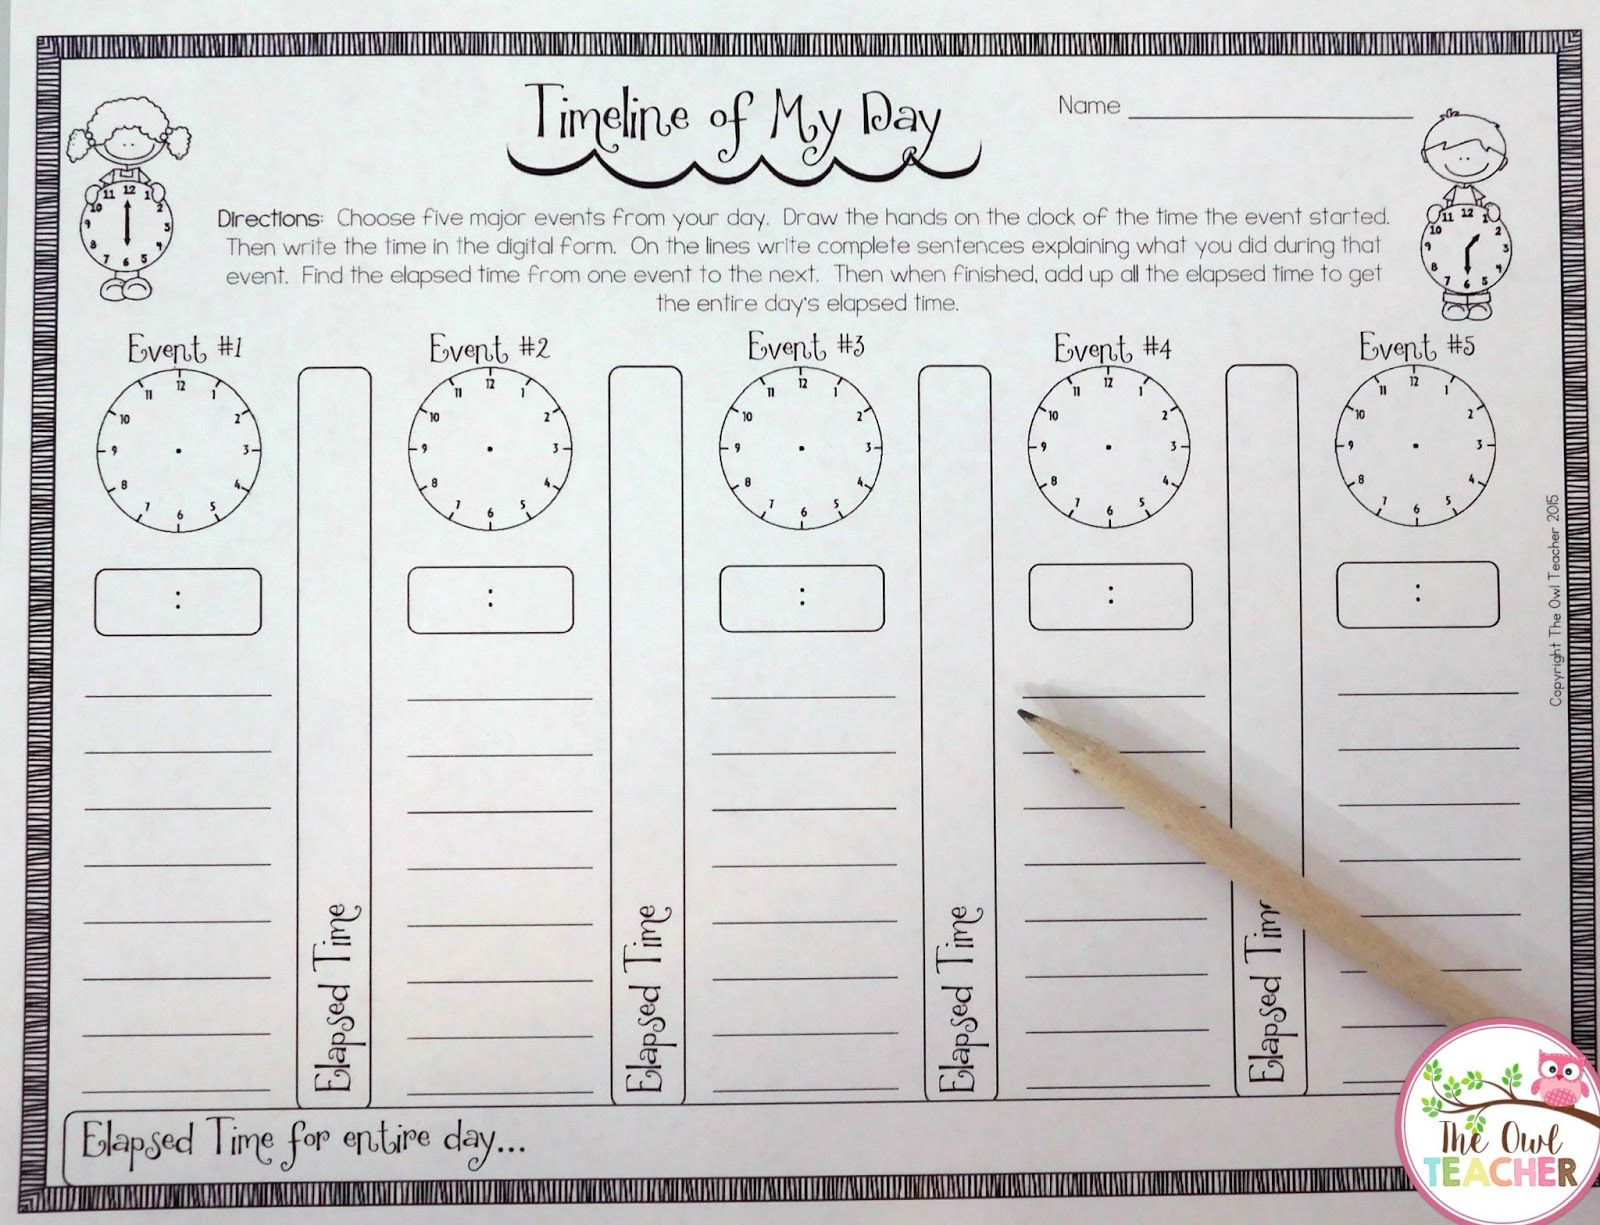 worksheet Days Elapsed 17 best ideas about elapsed time on pinterest teaching math a timeline of my day